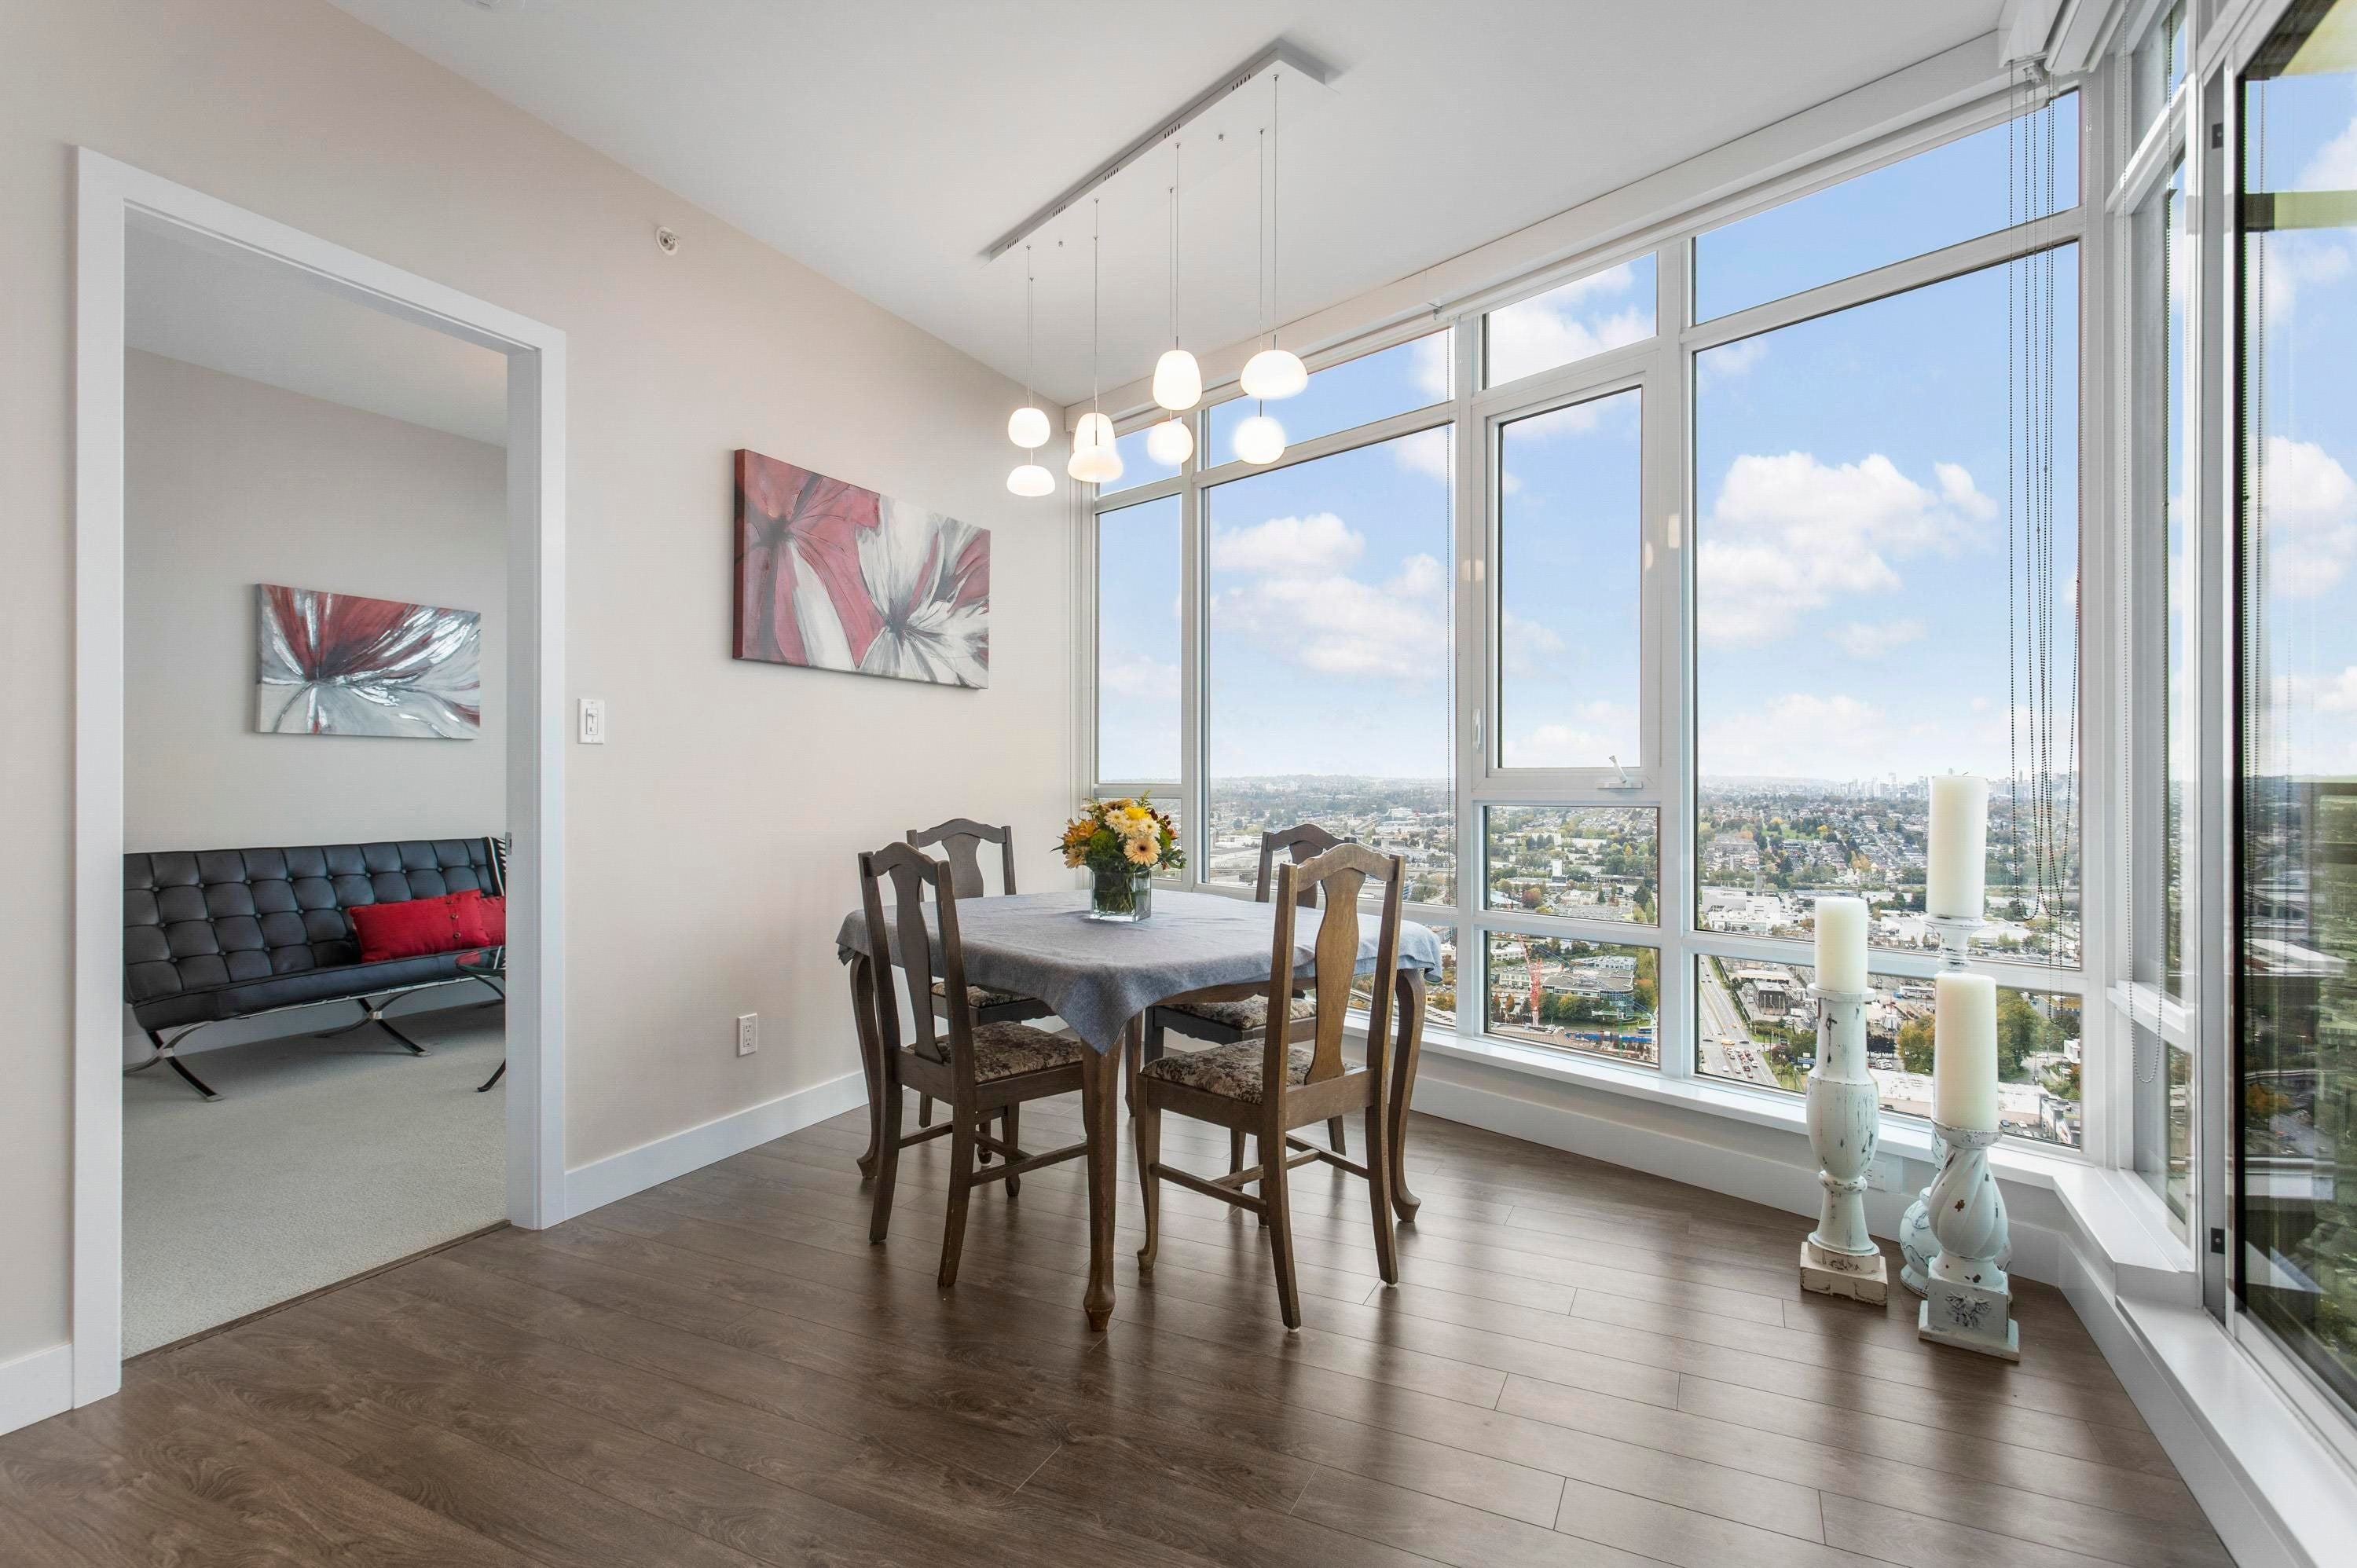 4002 2008 ROSSER AVENUE - Brentwood Park Apartment/Condo for sale, 2 Bedrooms (R2625548) - #14